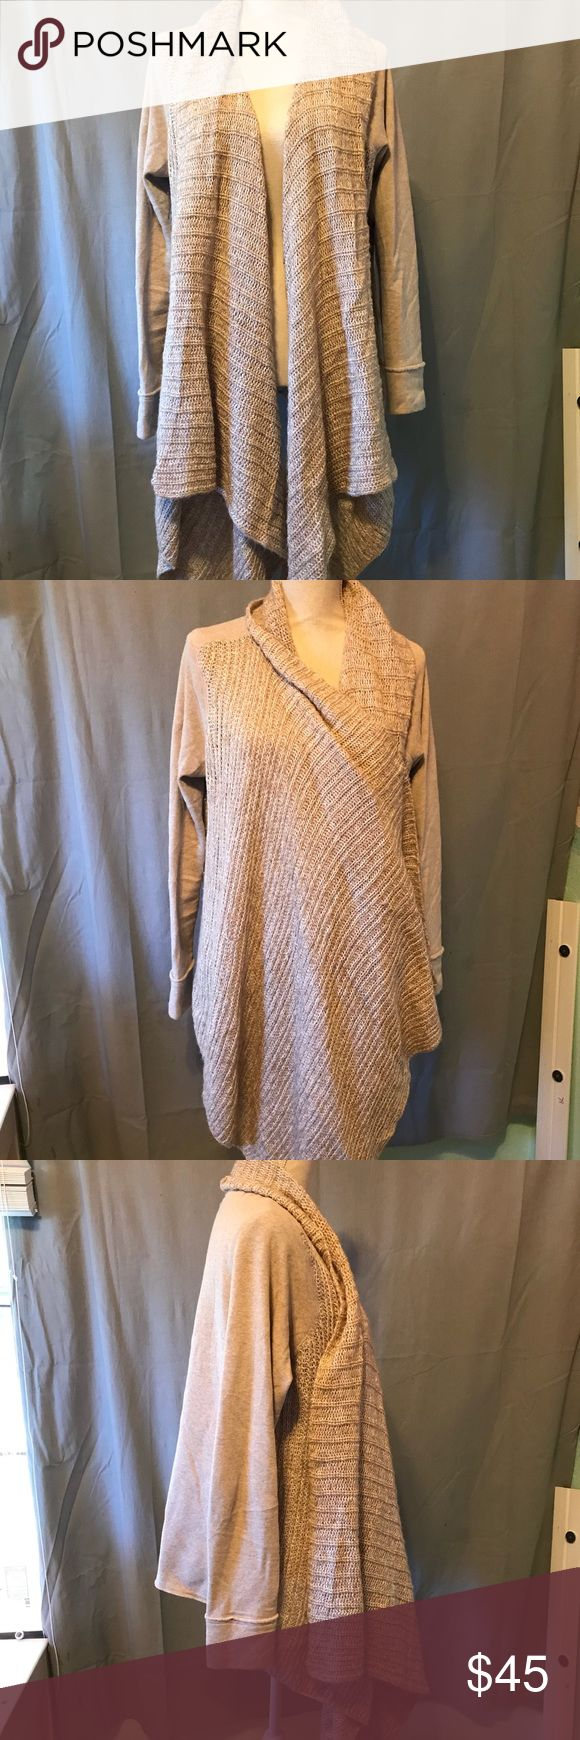 Saturday Sunday Tan Cardigan Long Extra long front tan cardigan by Saturday Sunday. Size XL. Short in back, very cozy. Anthropologie Sweaters Cardigans